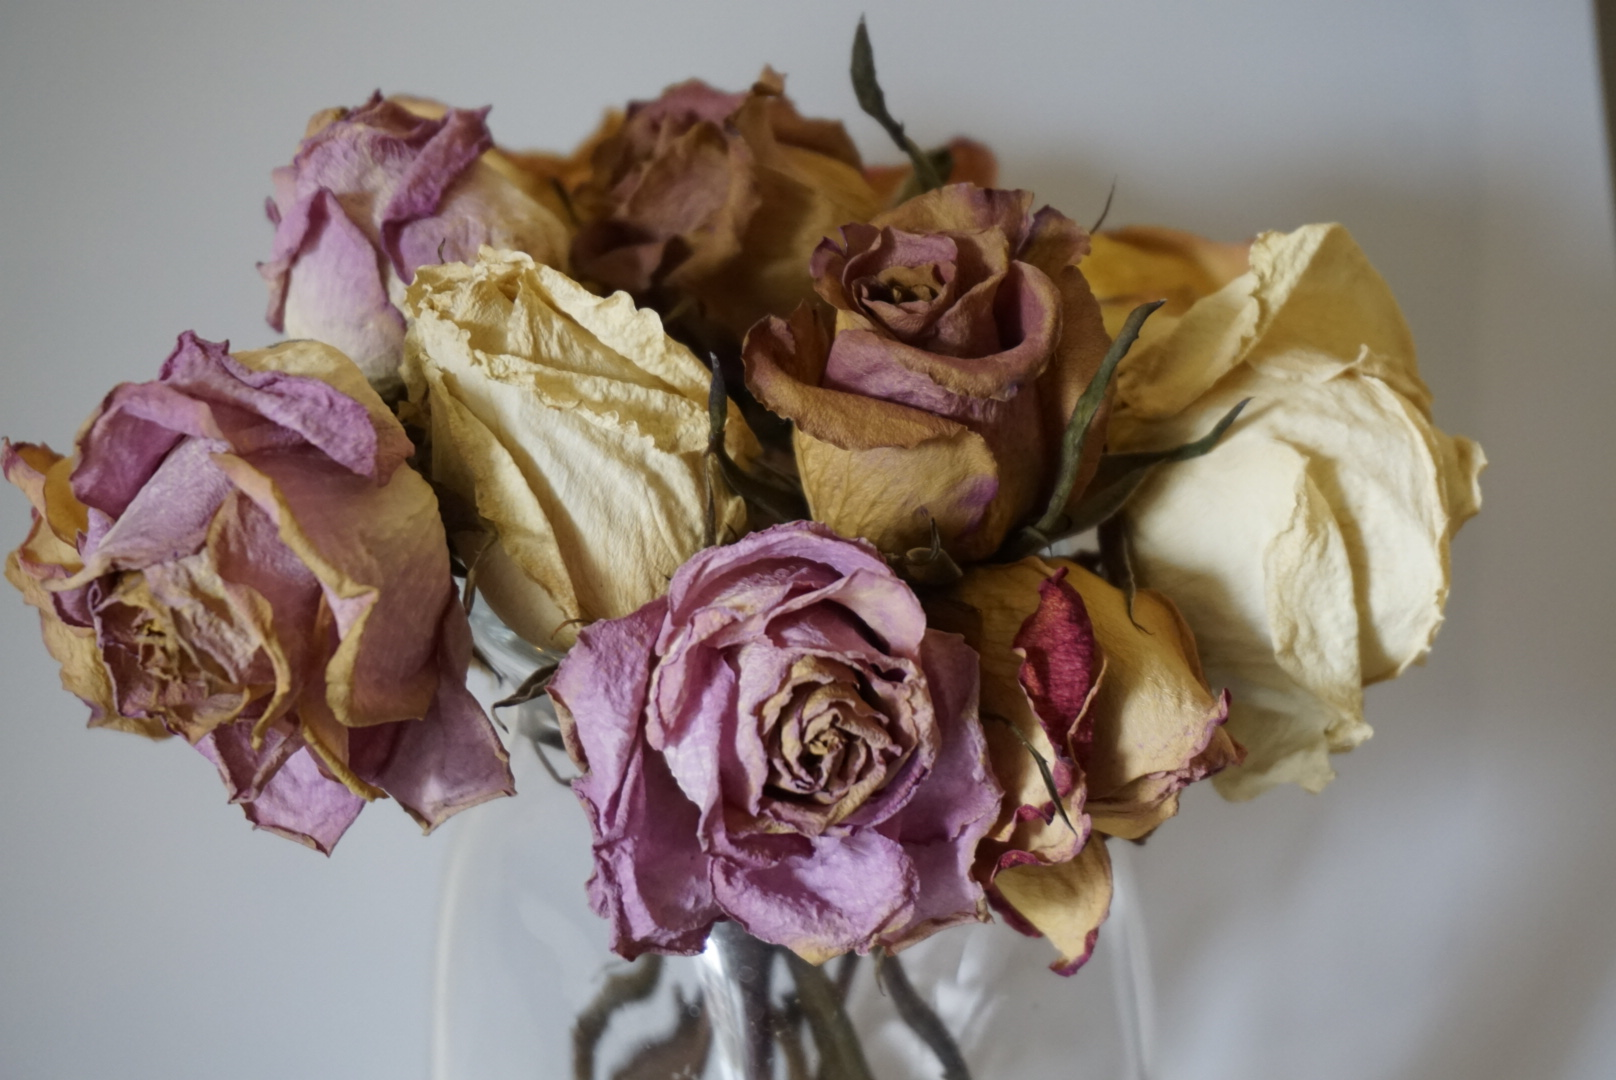 I love the colors of these dead flowers